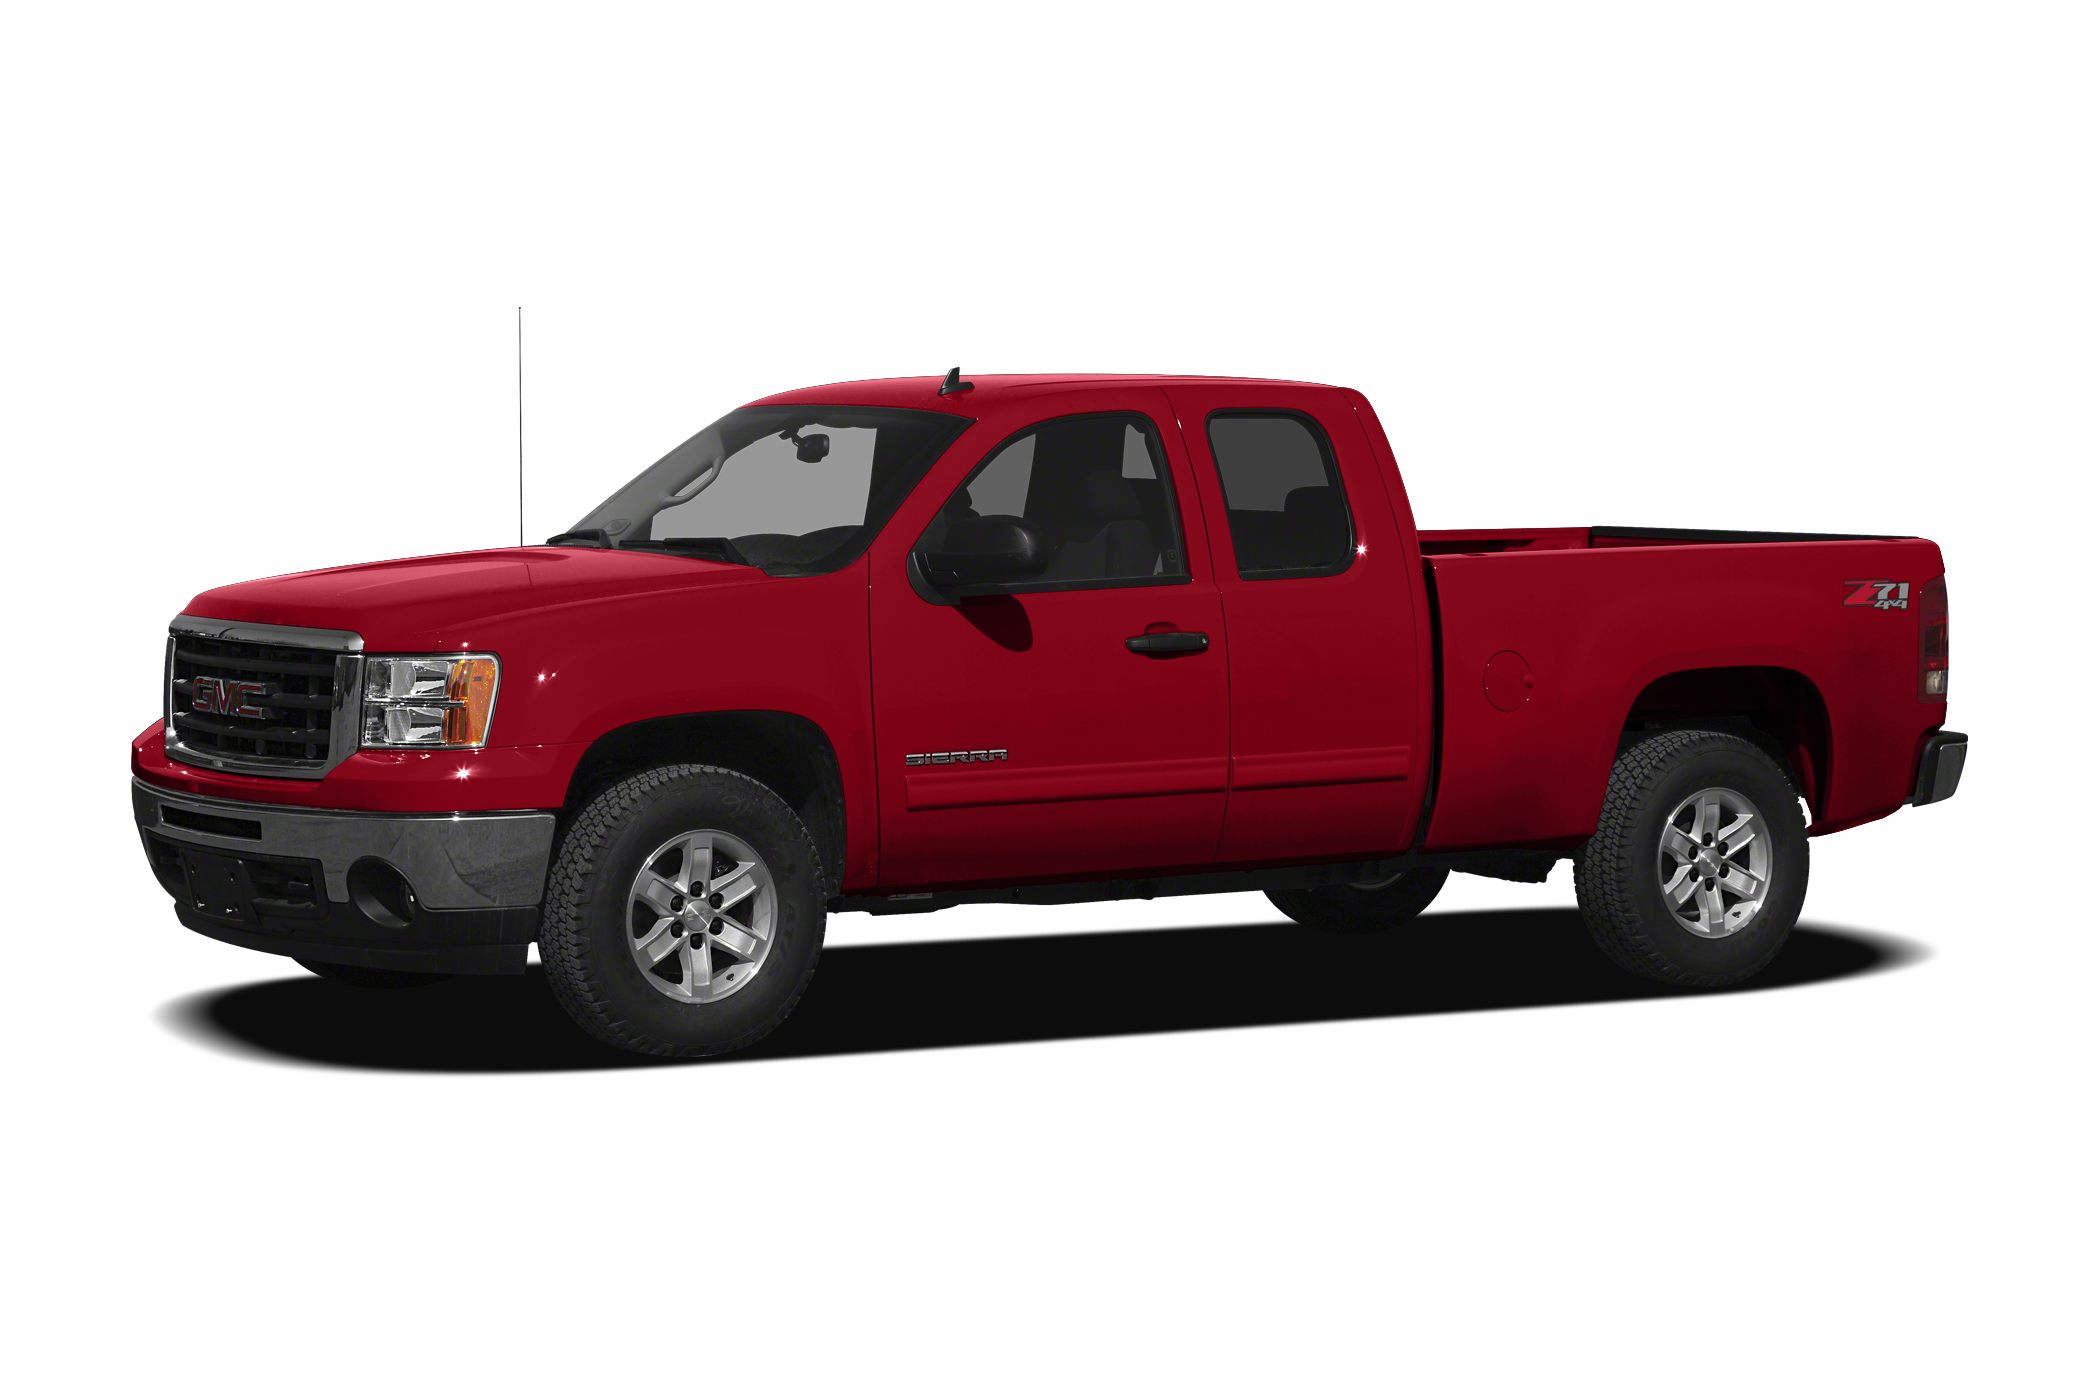 2011 GMC Sierra 1500 SL Crew Cab Pickup for sale in Memphis for $21,990 with 75,849 miles